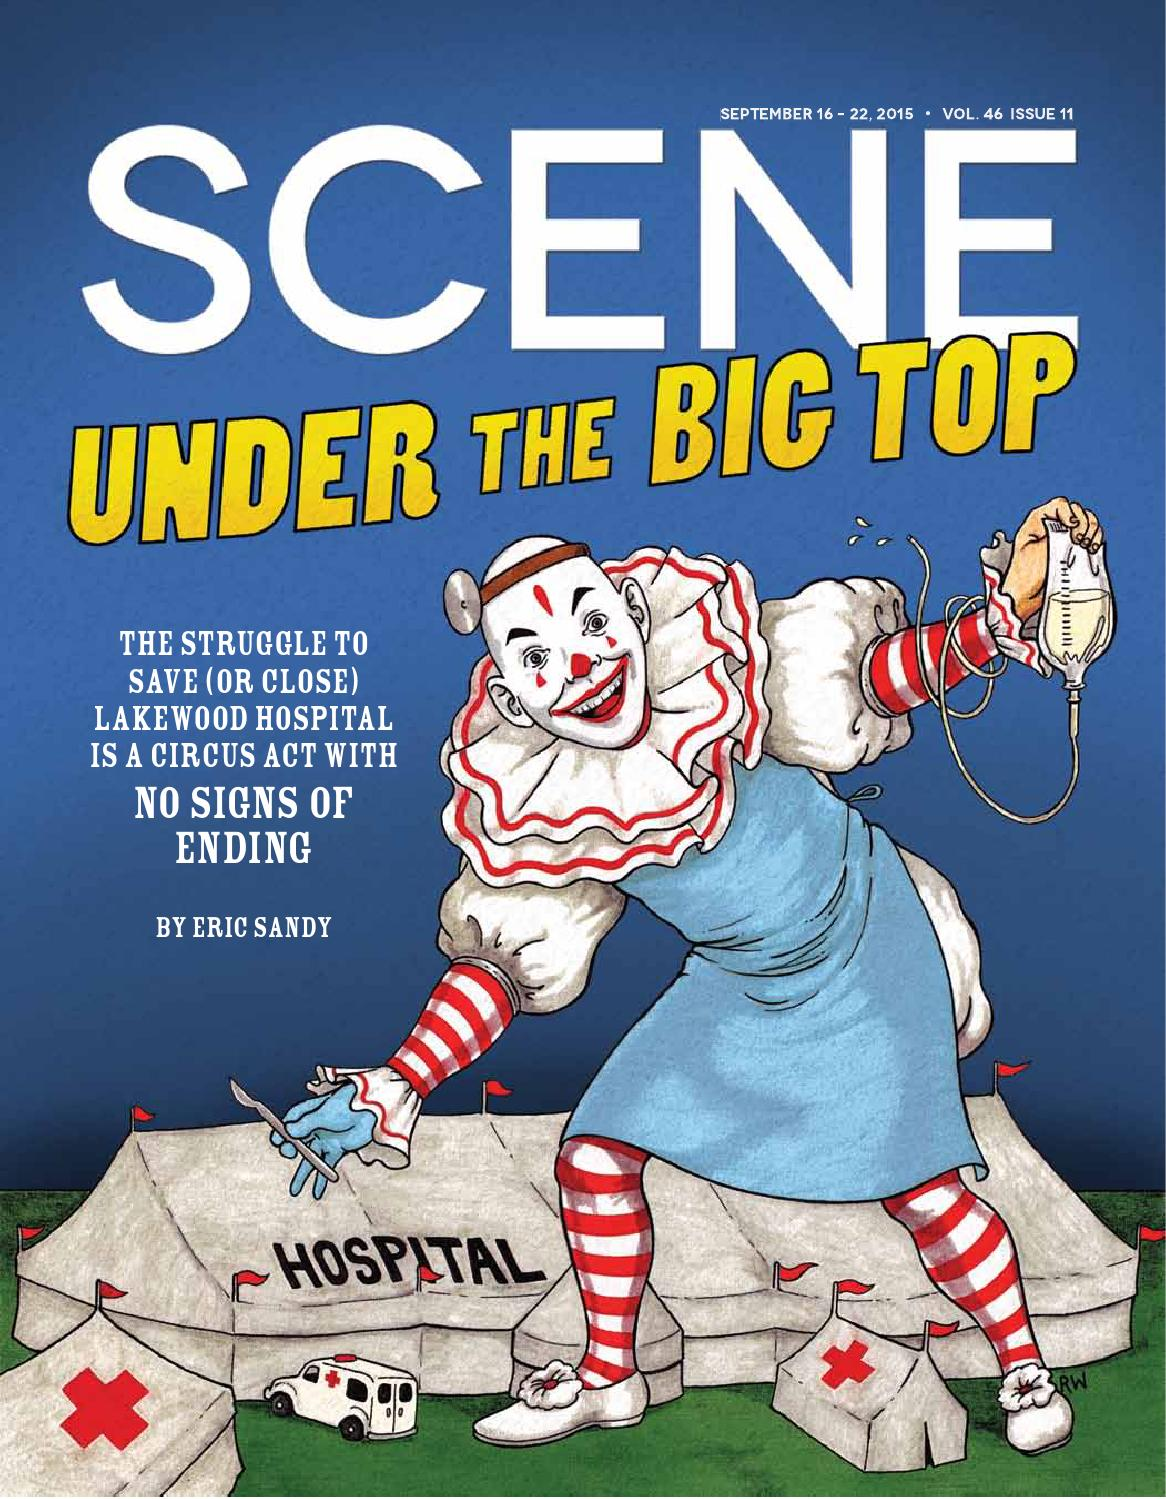 Scene Sept 16, 2015 by Euclid Media Group - issuu